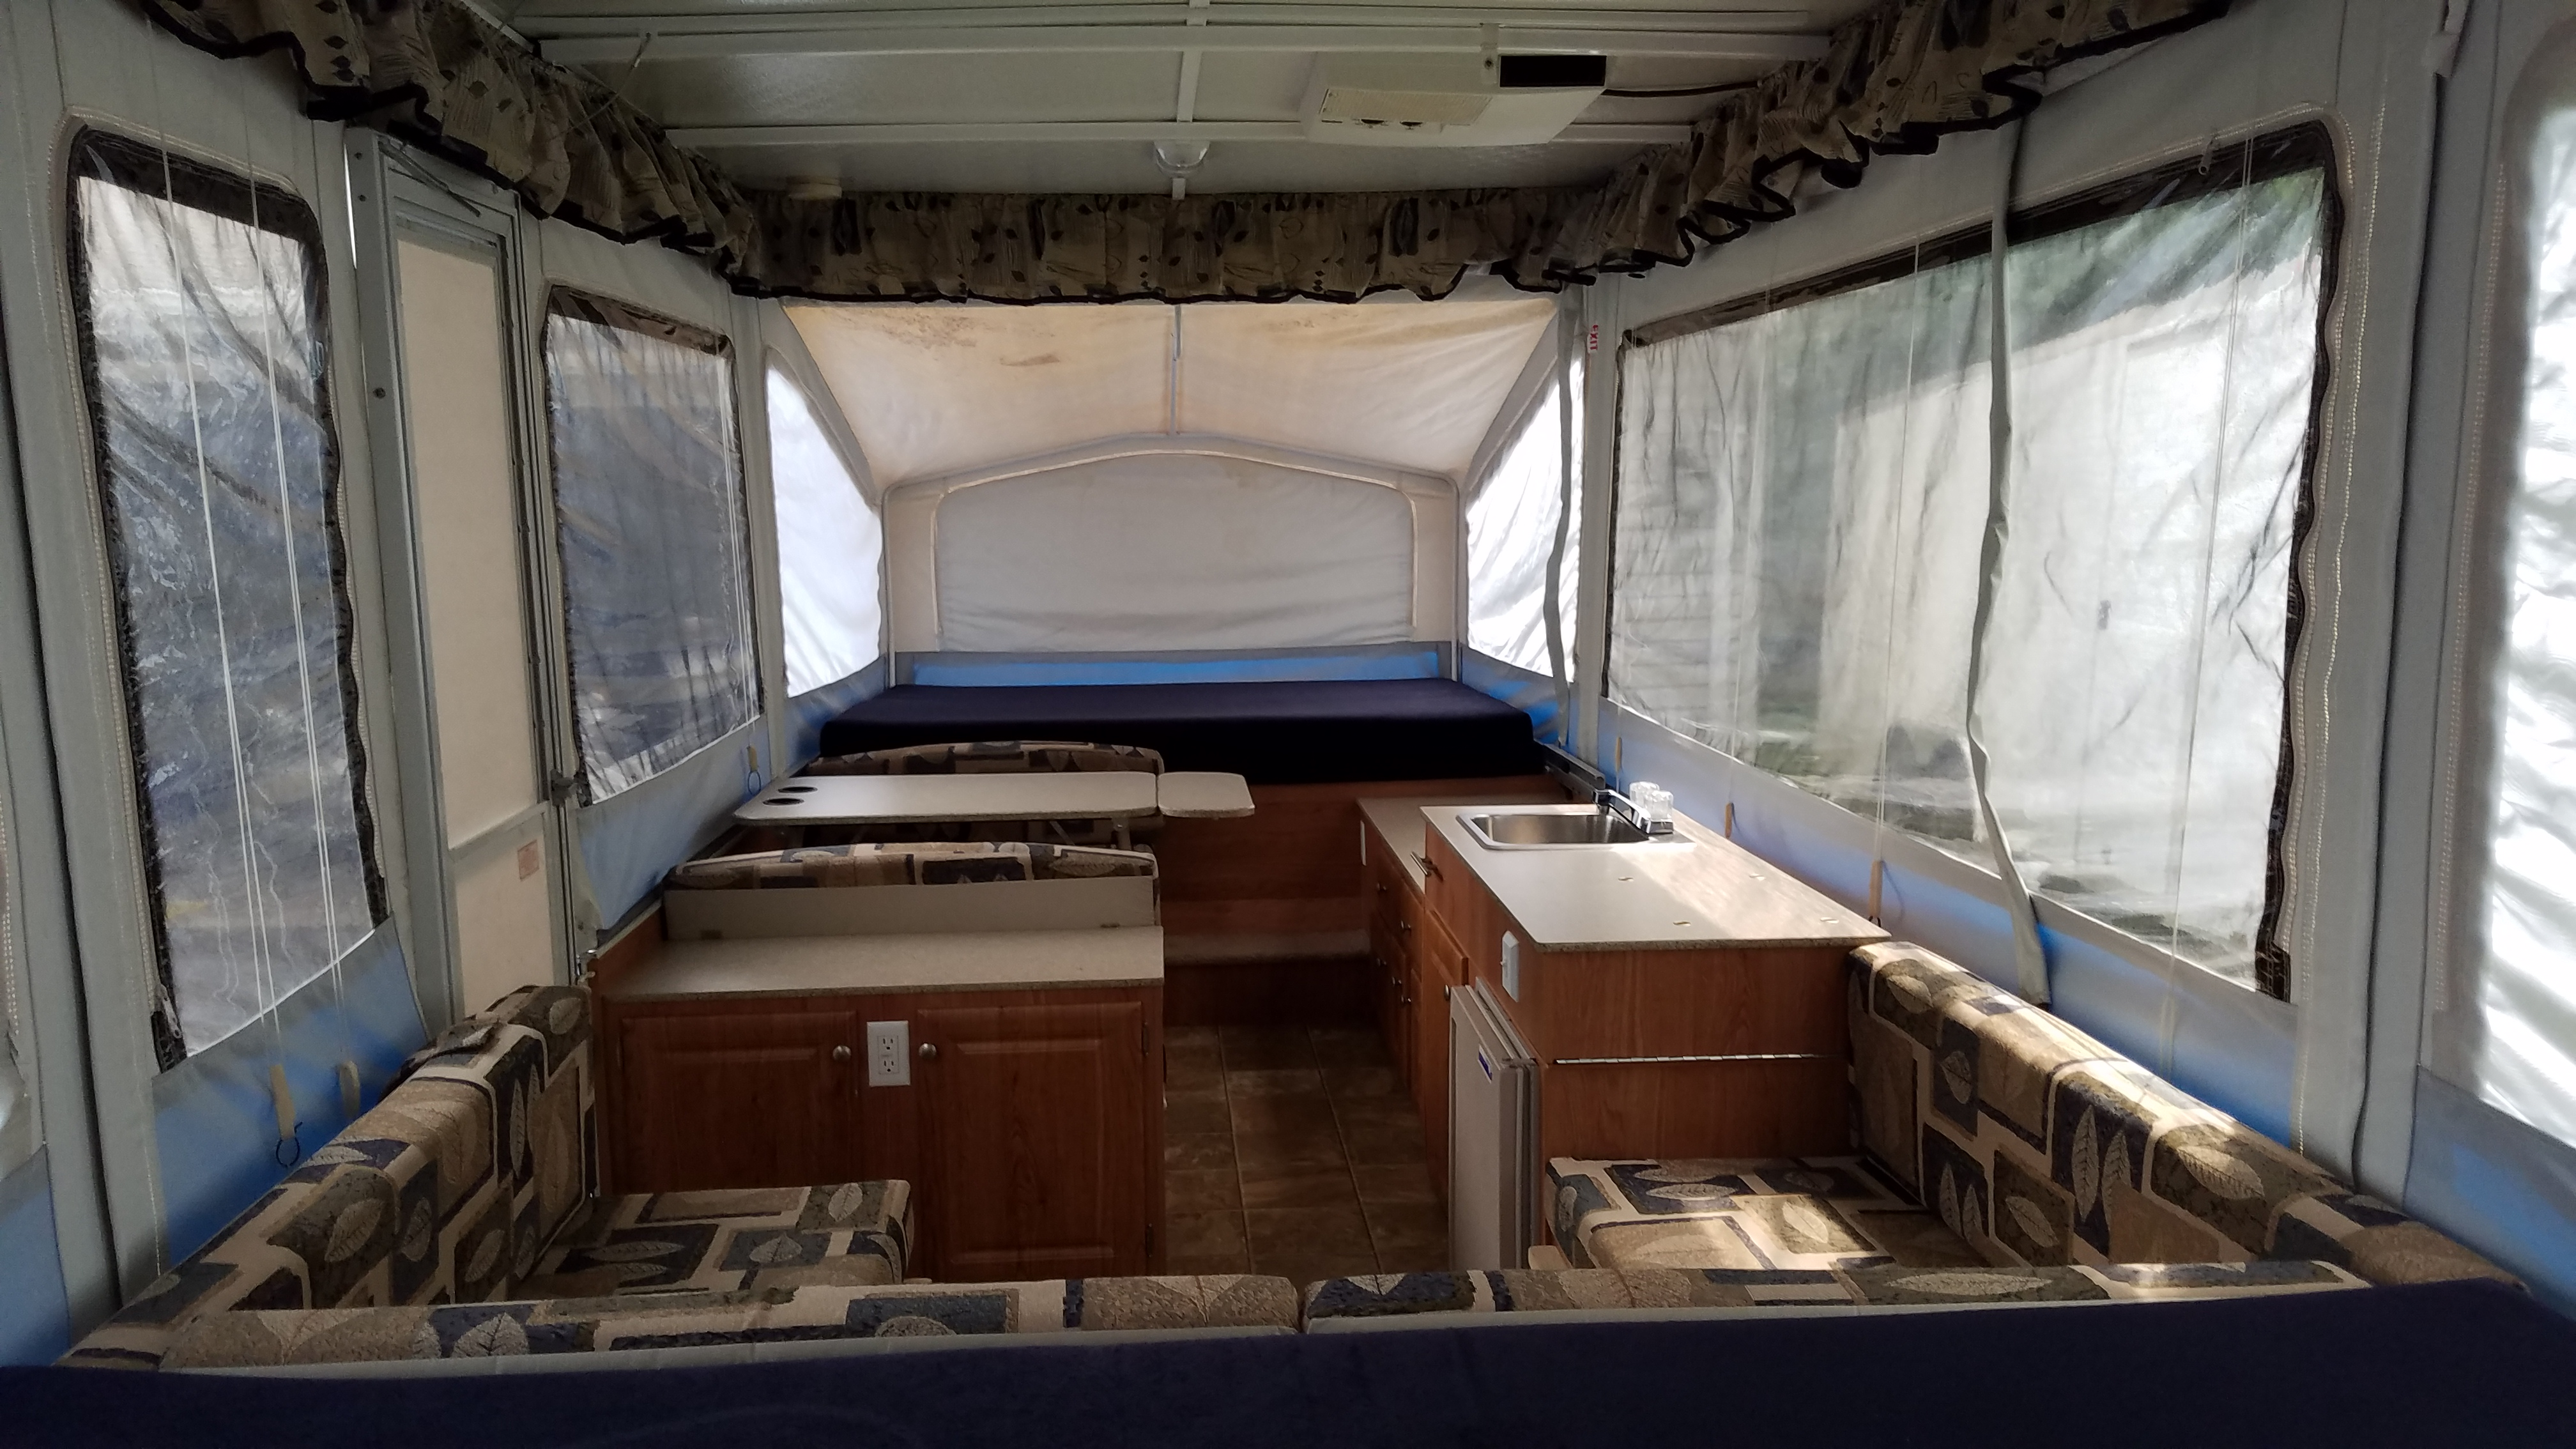 Tinted vinyl windows add privacy and shade. Curtains come down over all windows and pop out bed areas. You can get it to be pretty dark inside during the day.. Jayco Baja 2008